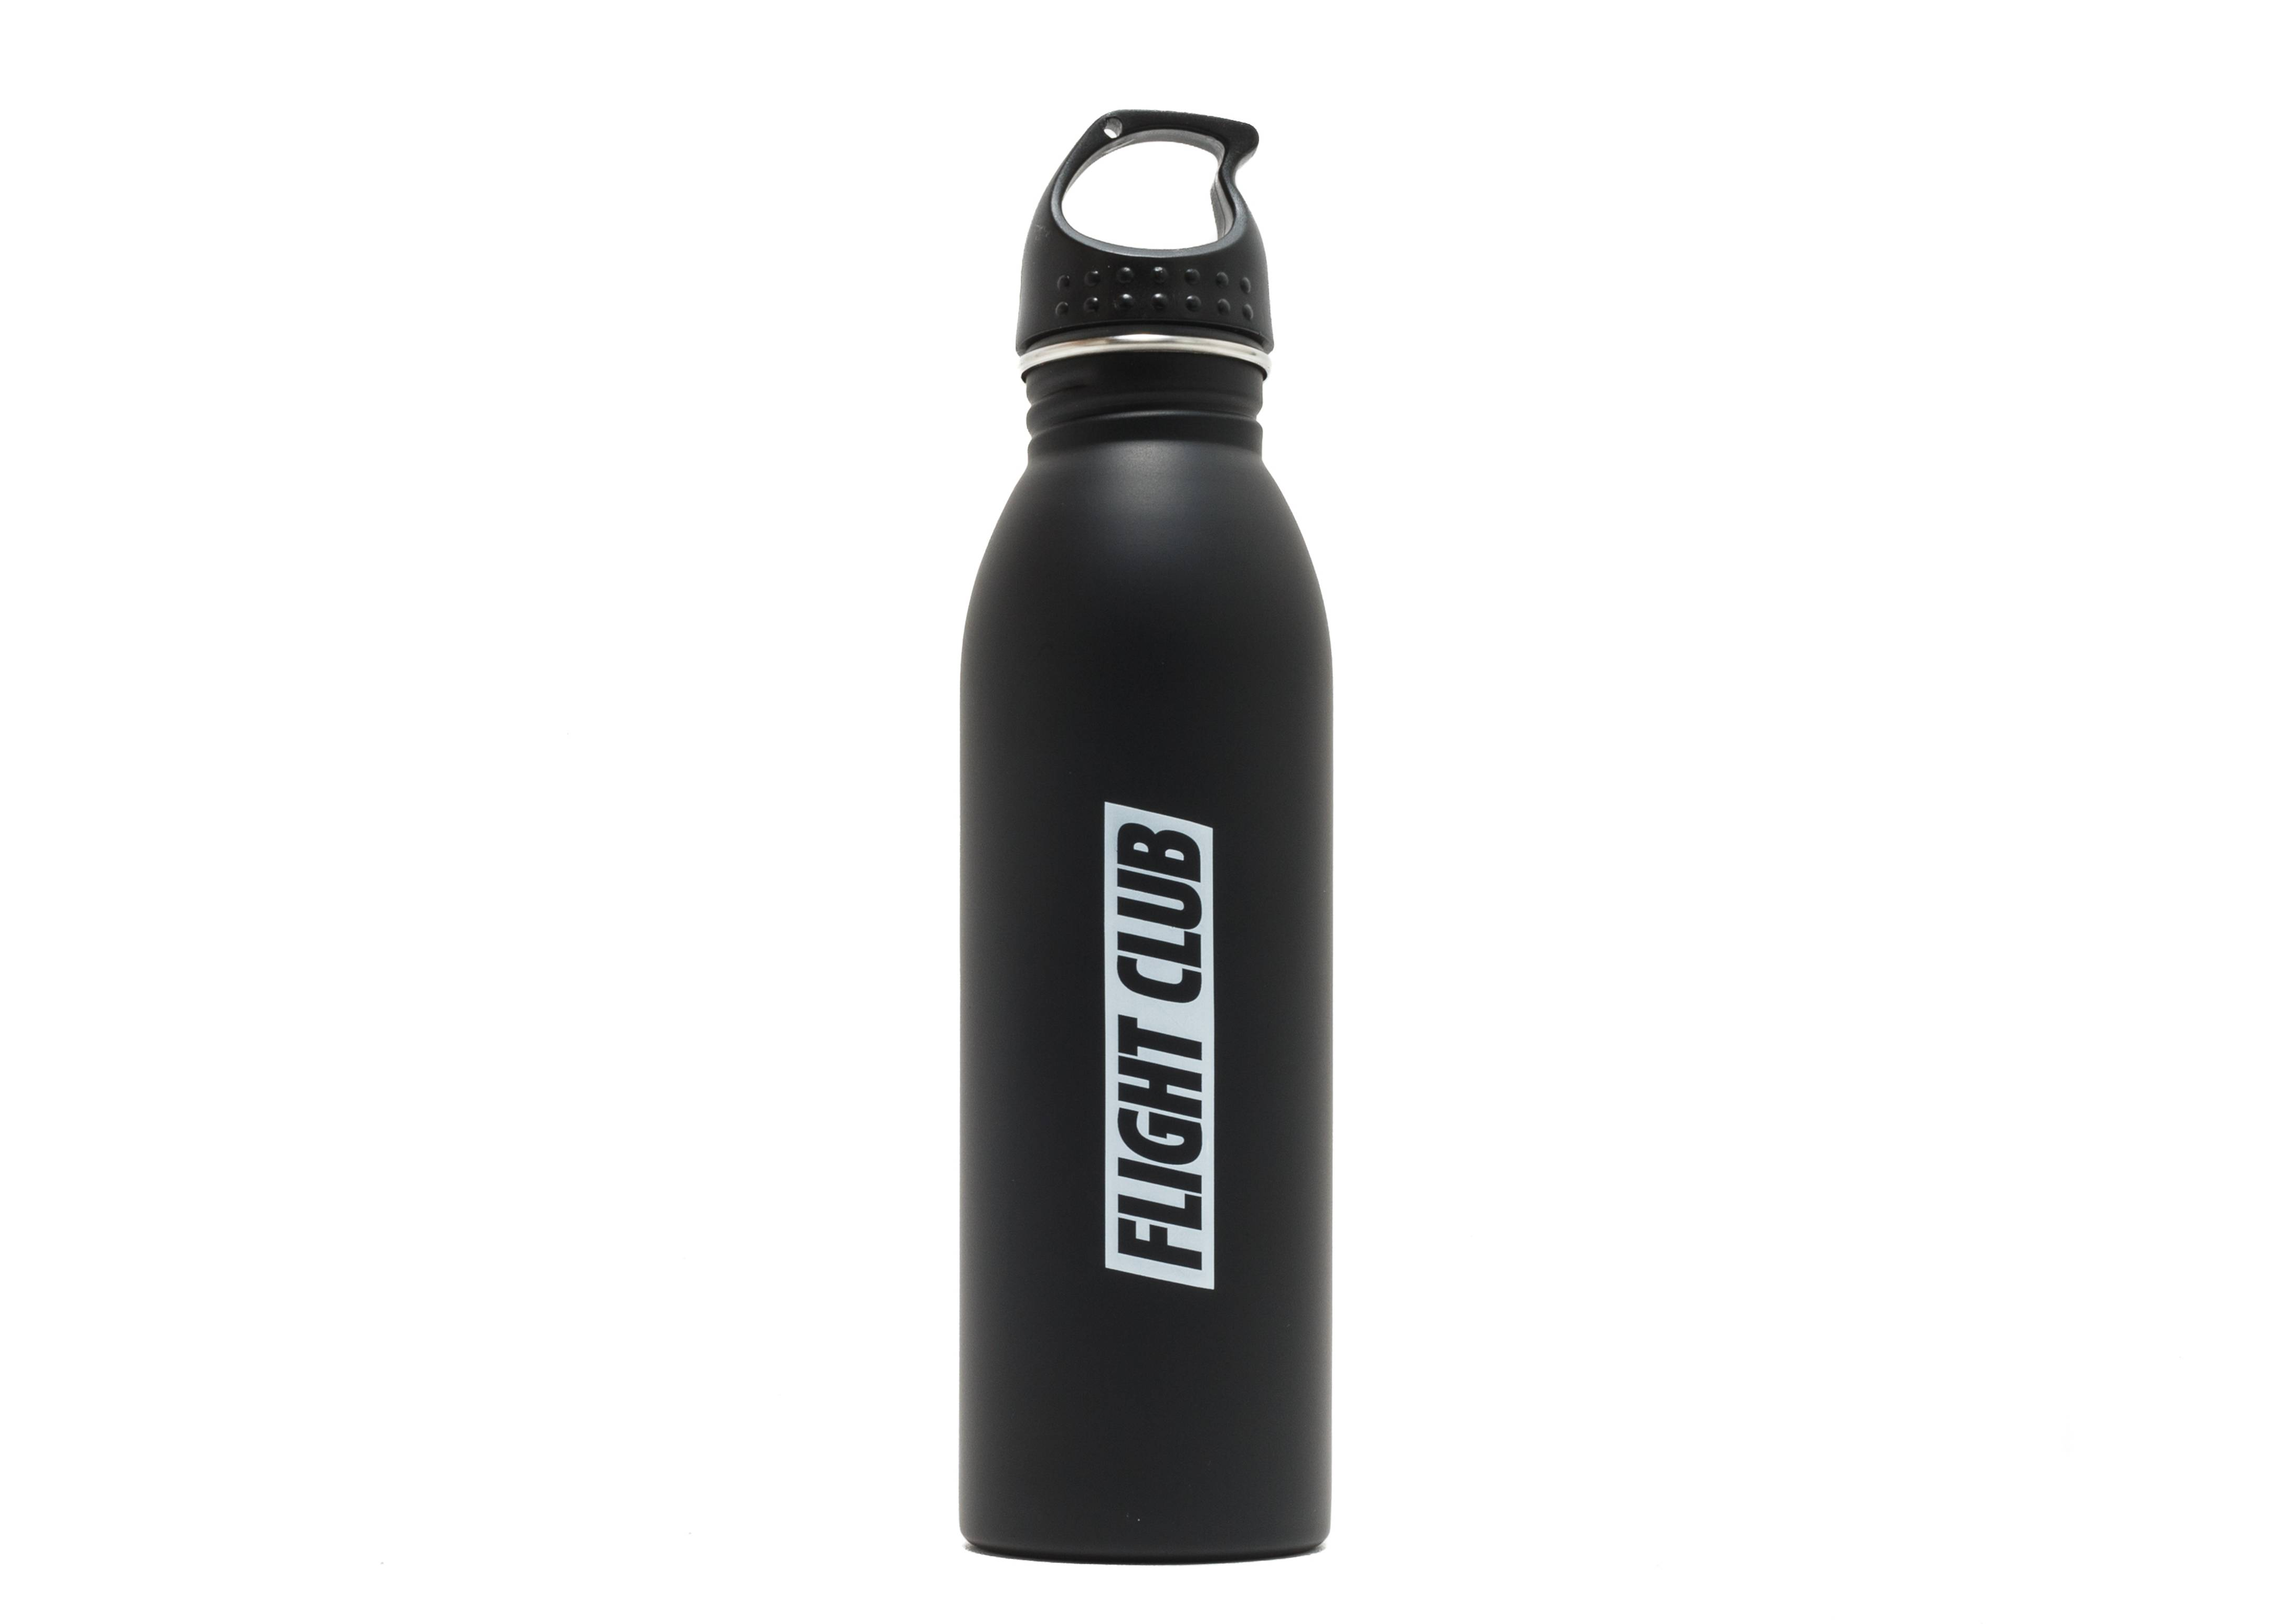 710 ml water bottle